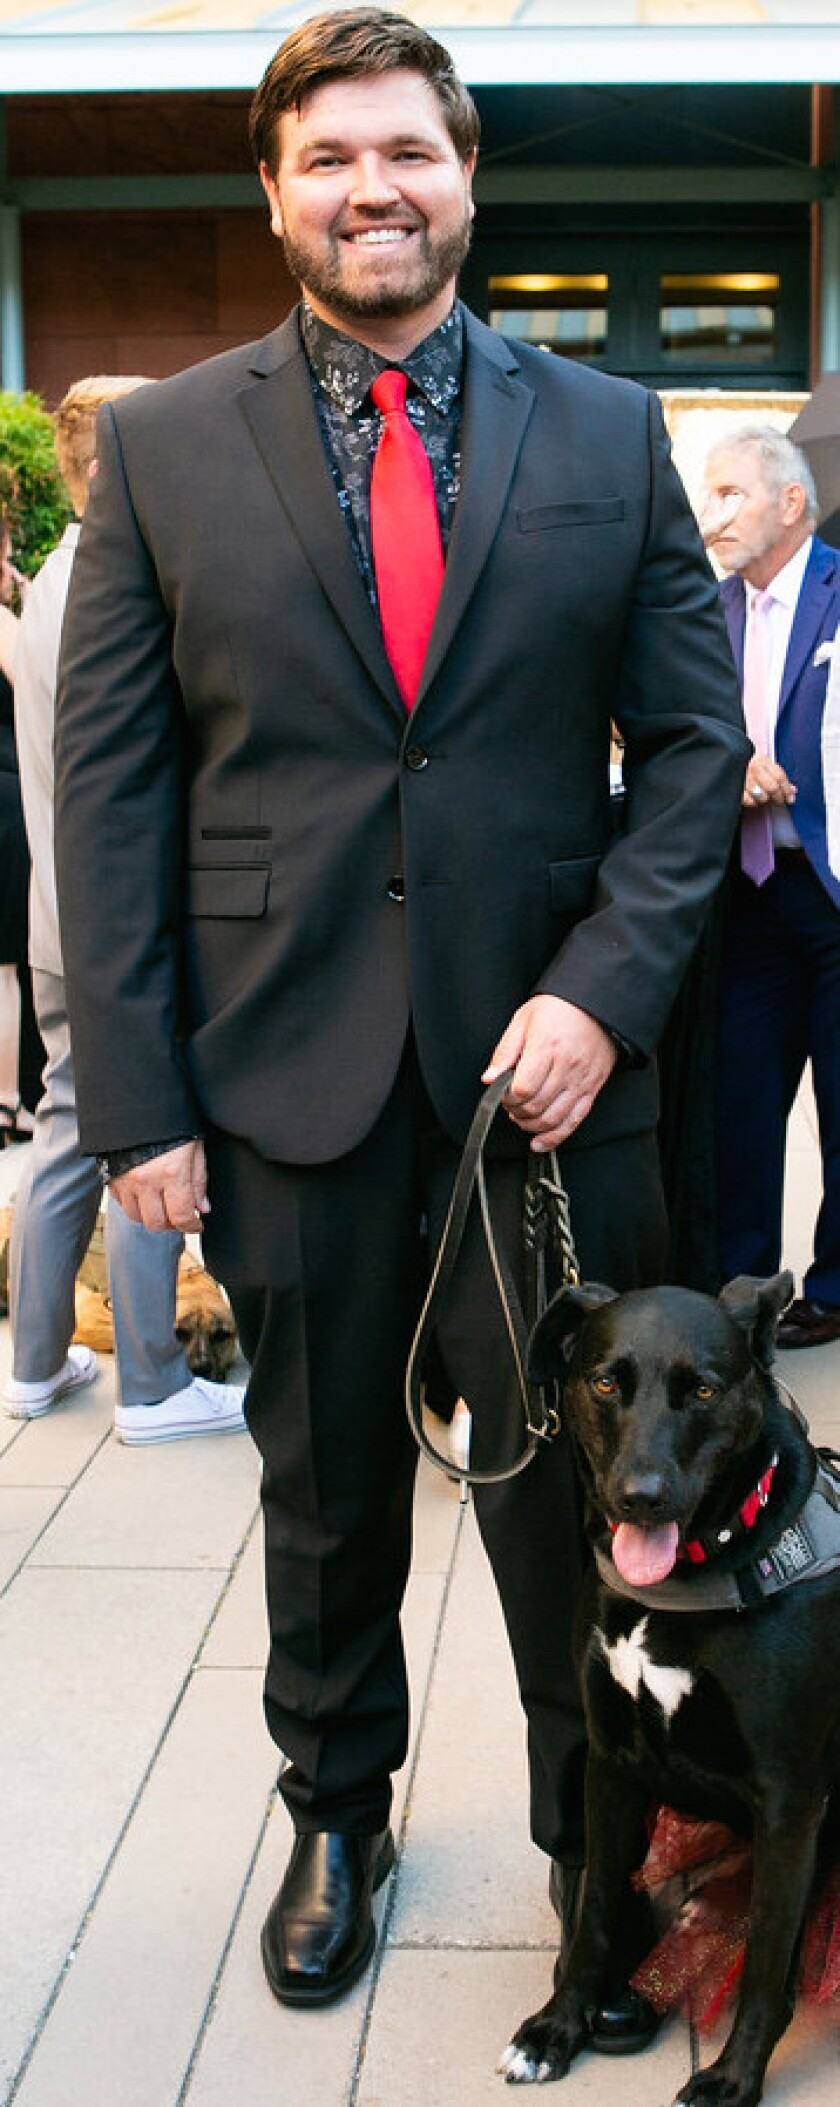 Aaron Neely, USN, and Liberty, STS service dog